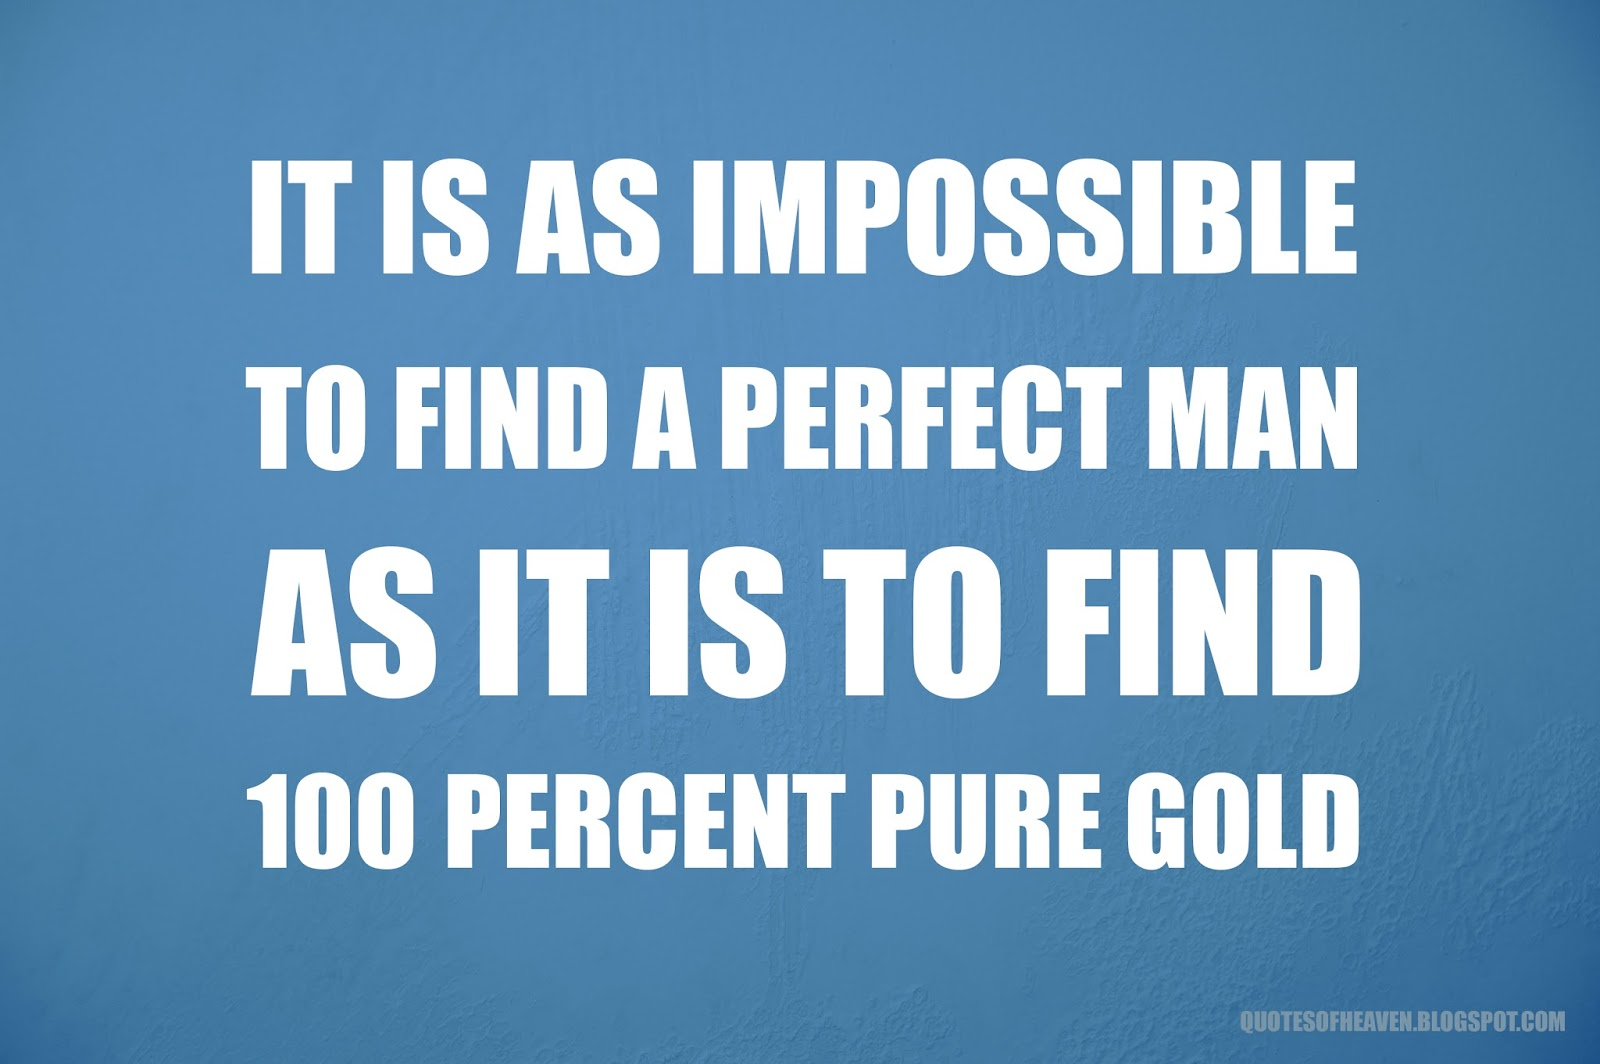 Quotes From Heaven It Is As Impossible To Find A Perfect Man As It